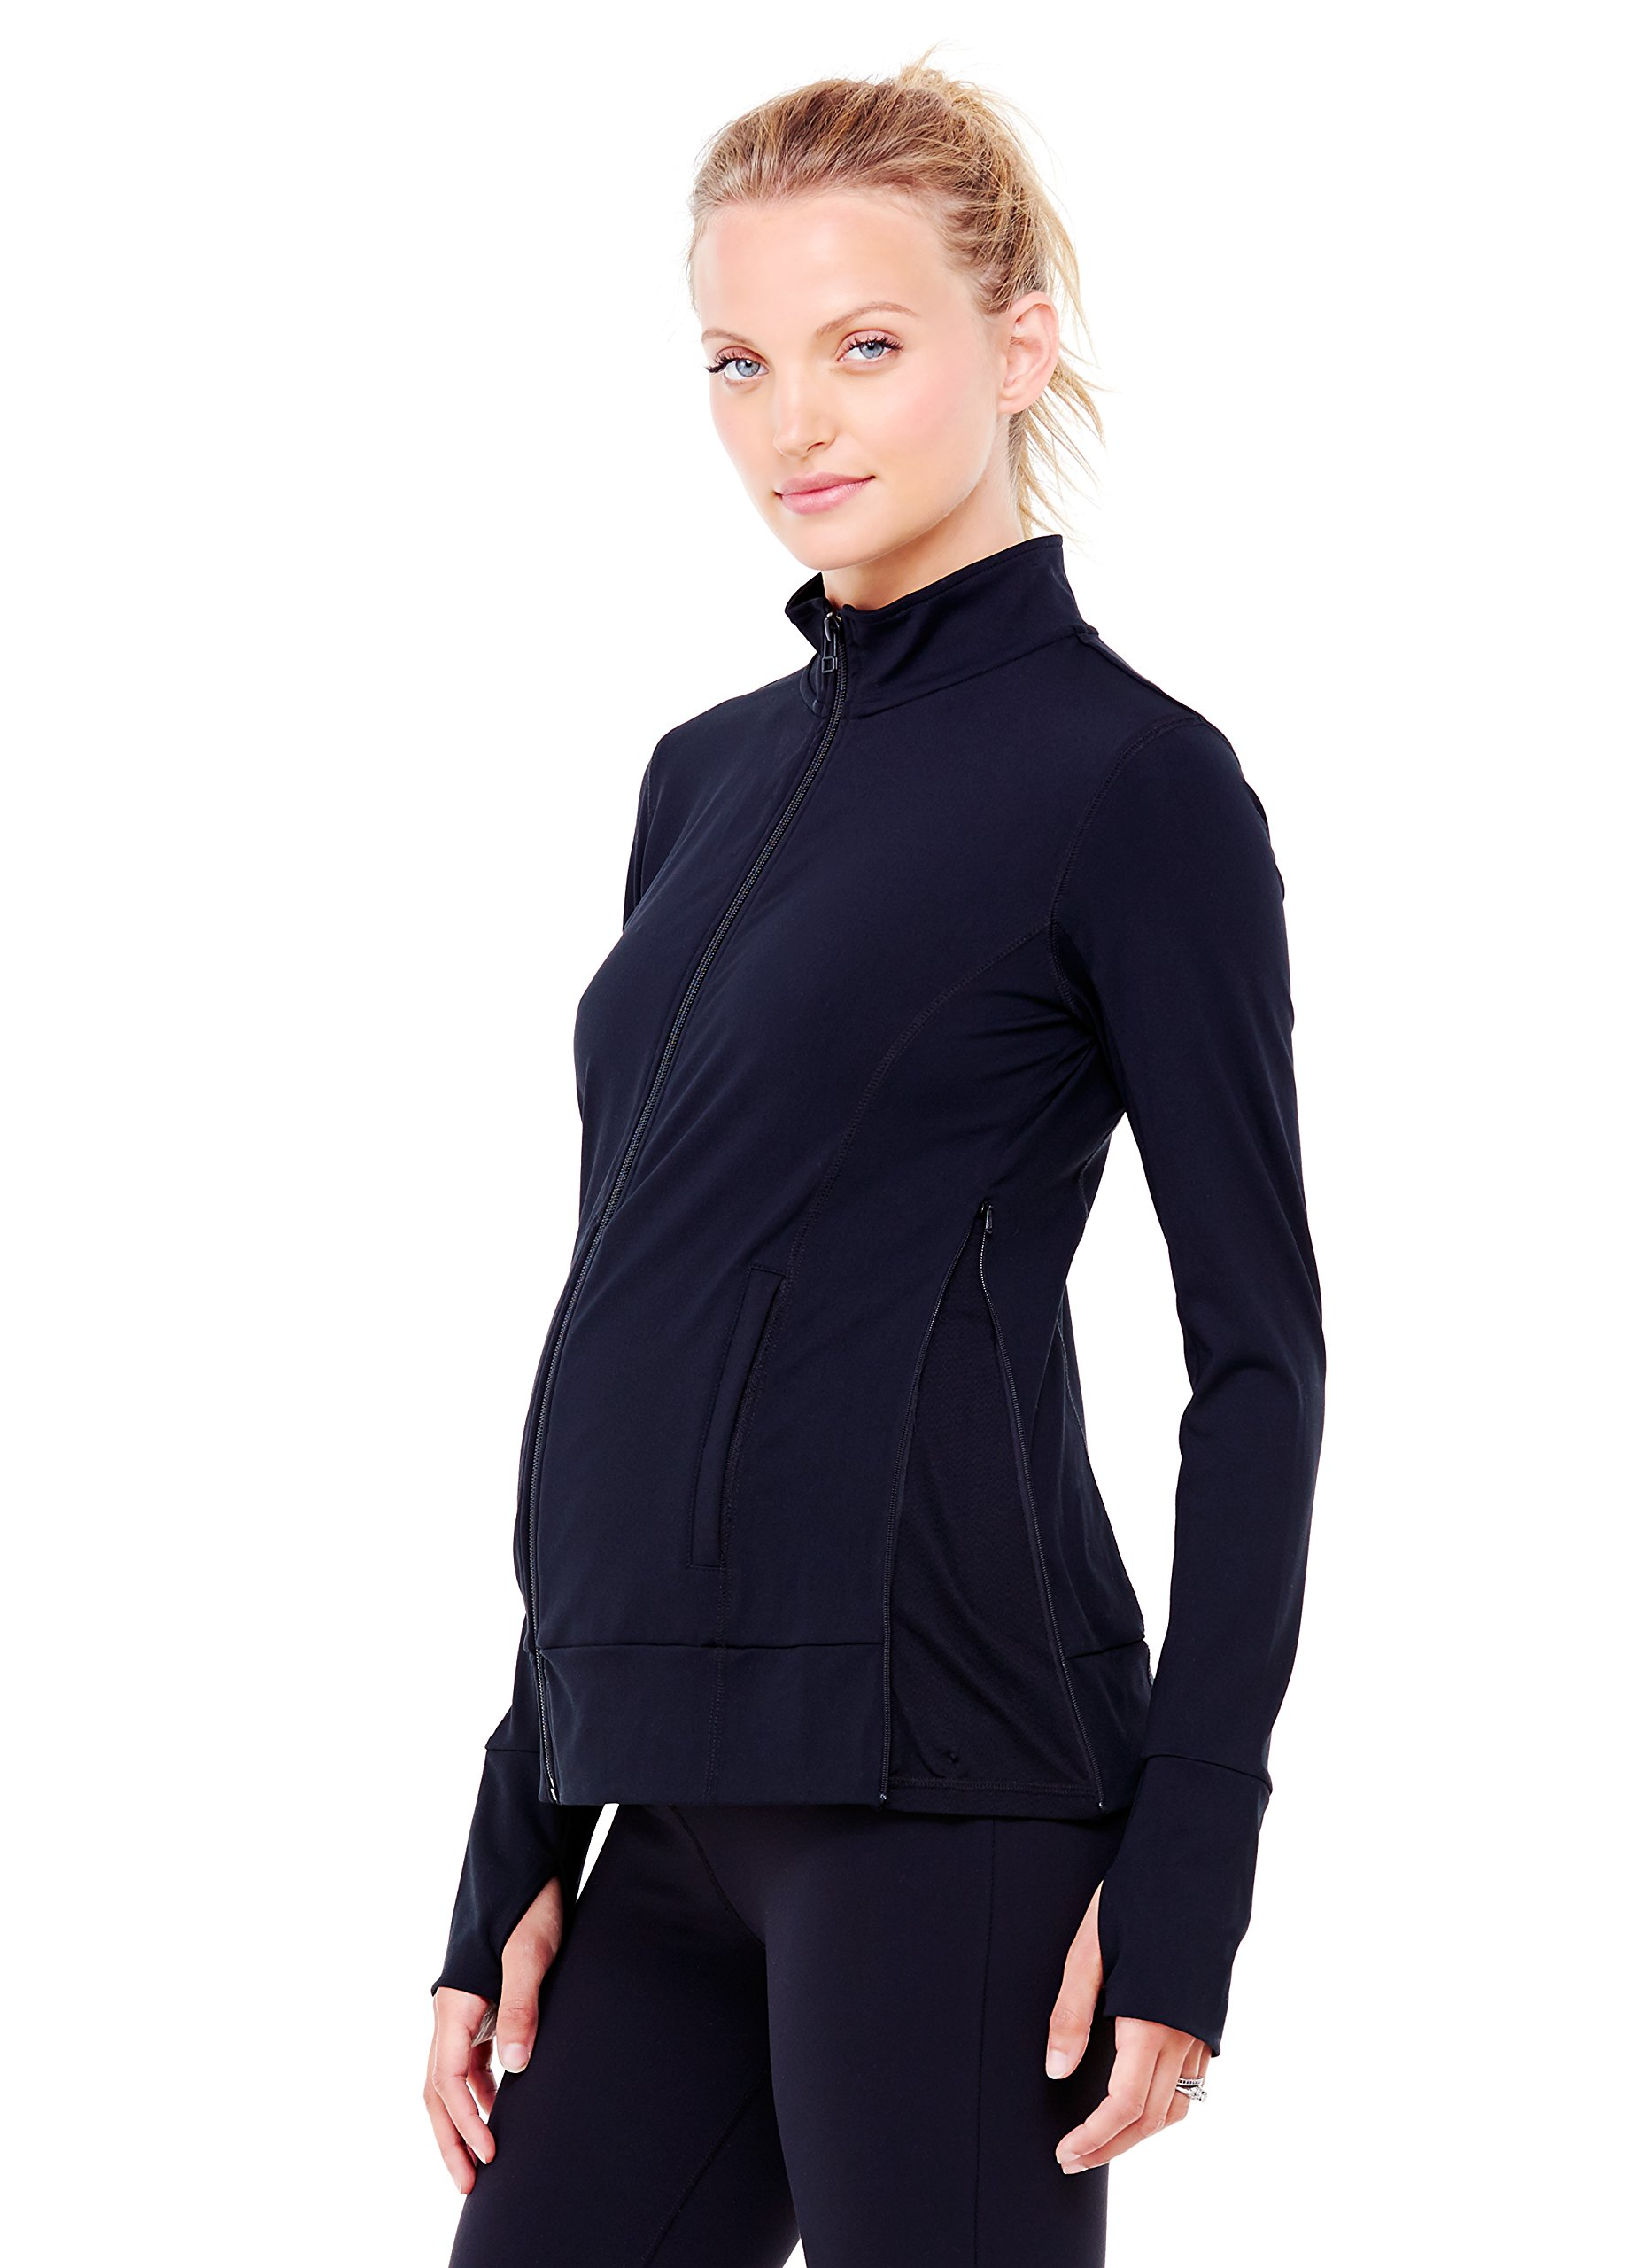 Ingrid & Isabel Women's Maternity Side Zip Active Jacket, Jet Black, Medium